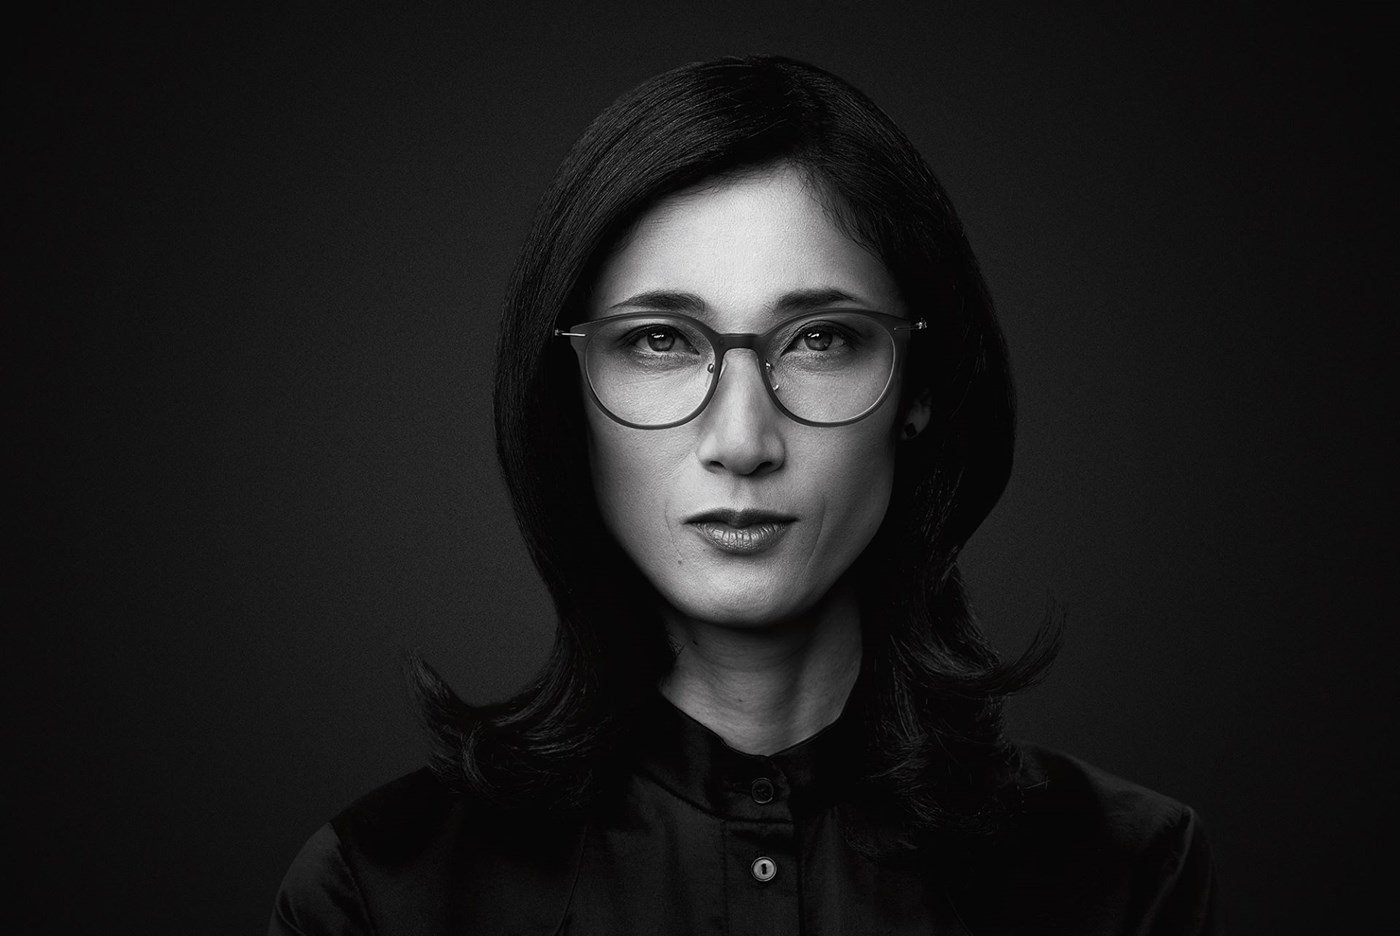 Black and white image of female wearing eyeglasses staring at the camera